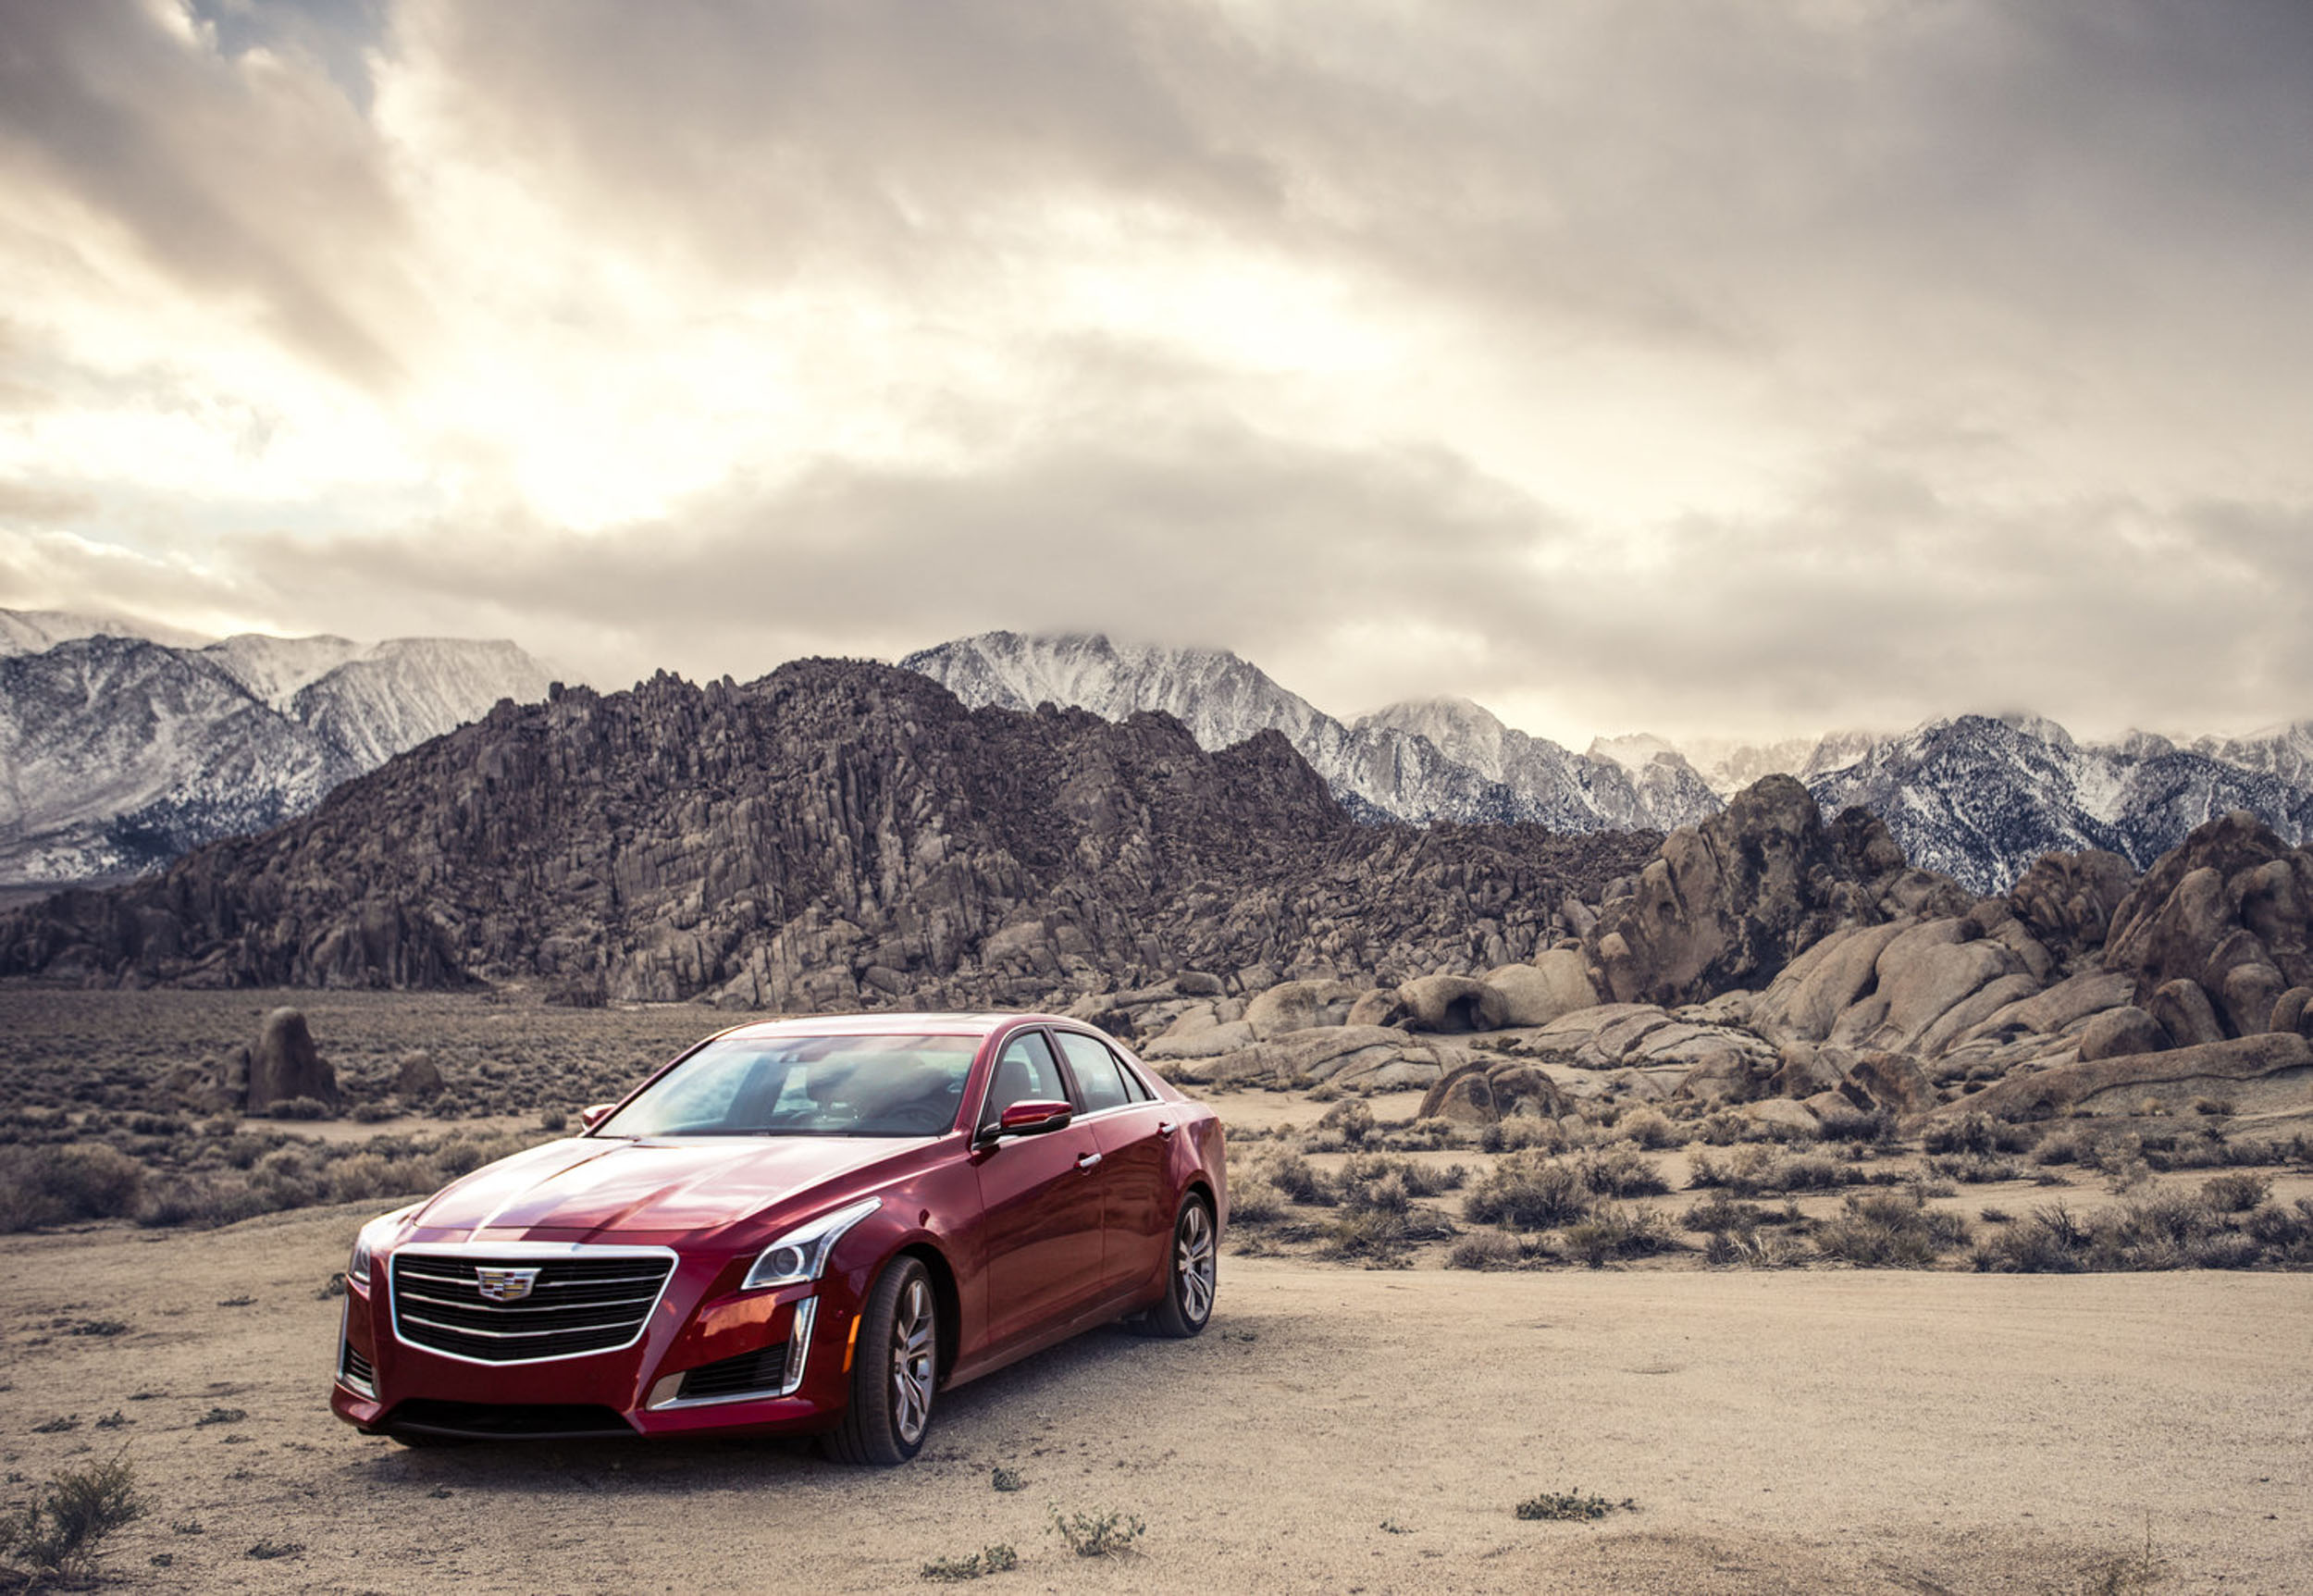 Automotive-Cadillac-2043